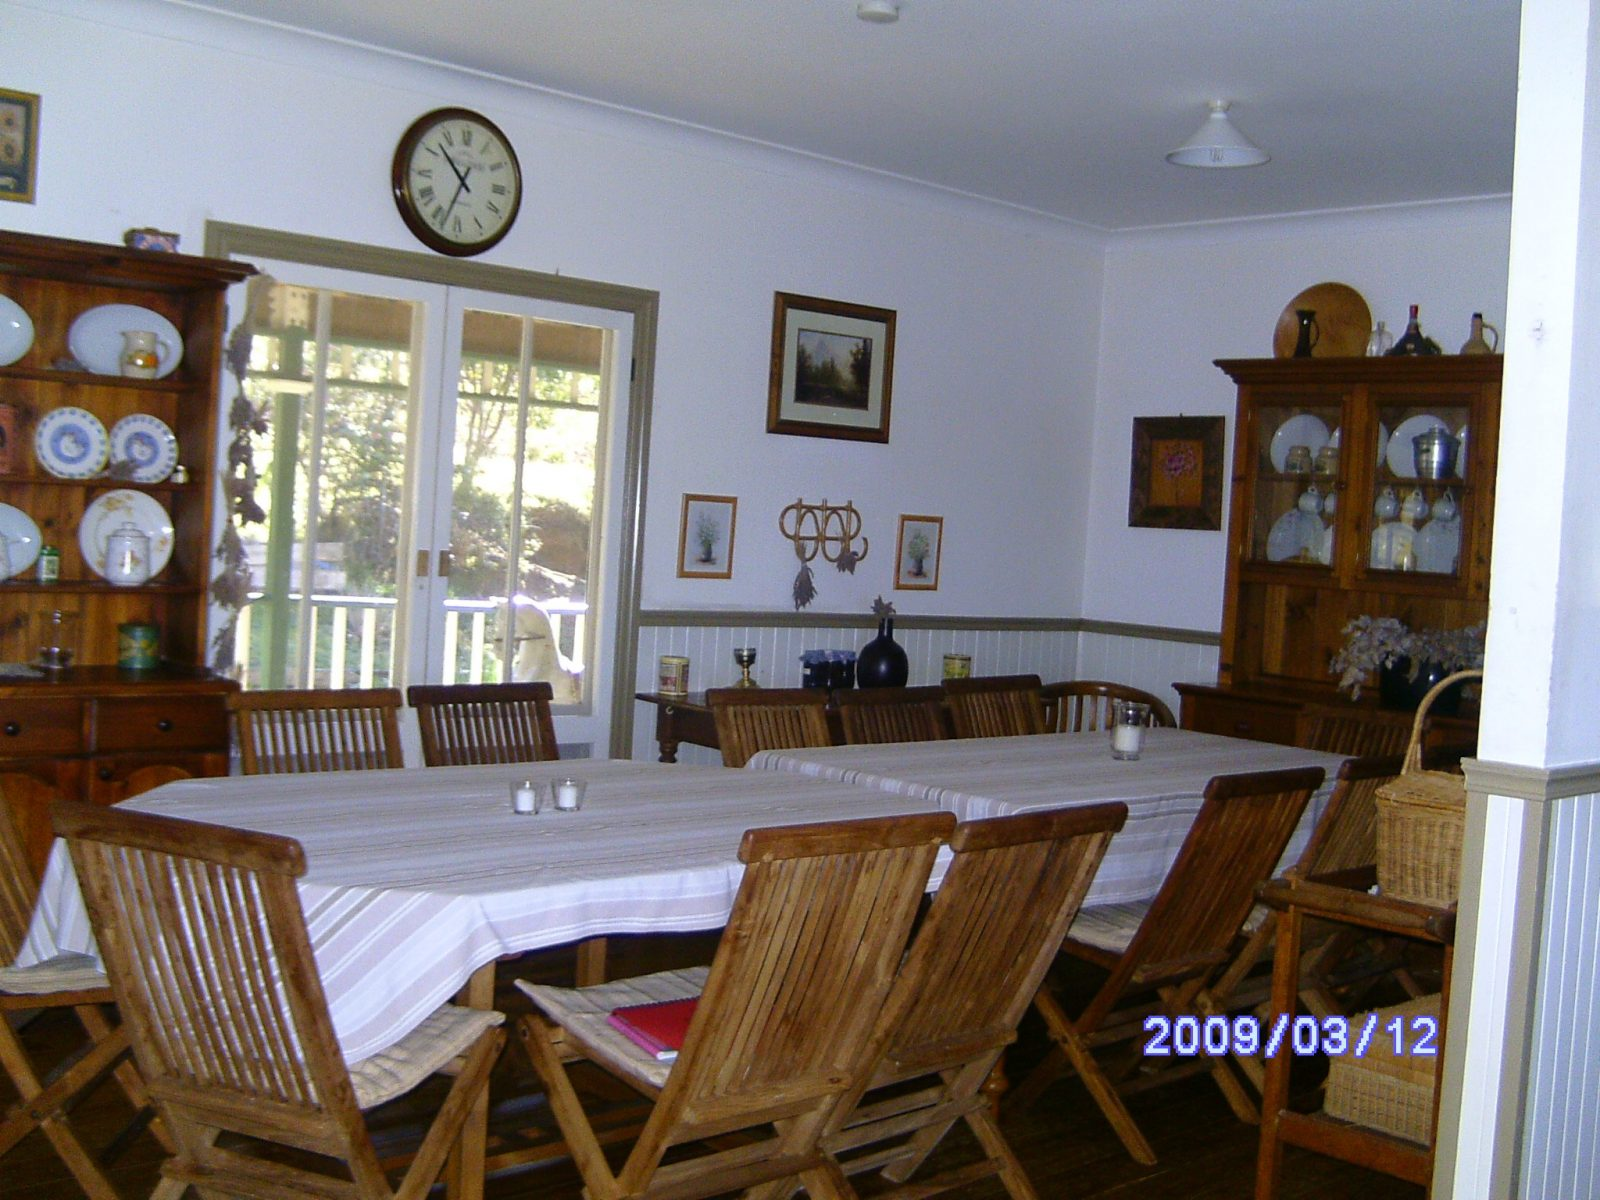 Seating for 16